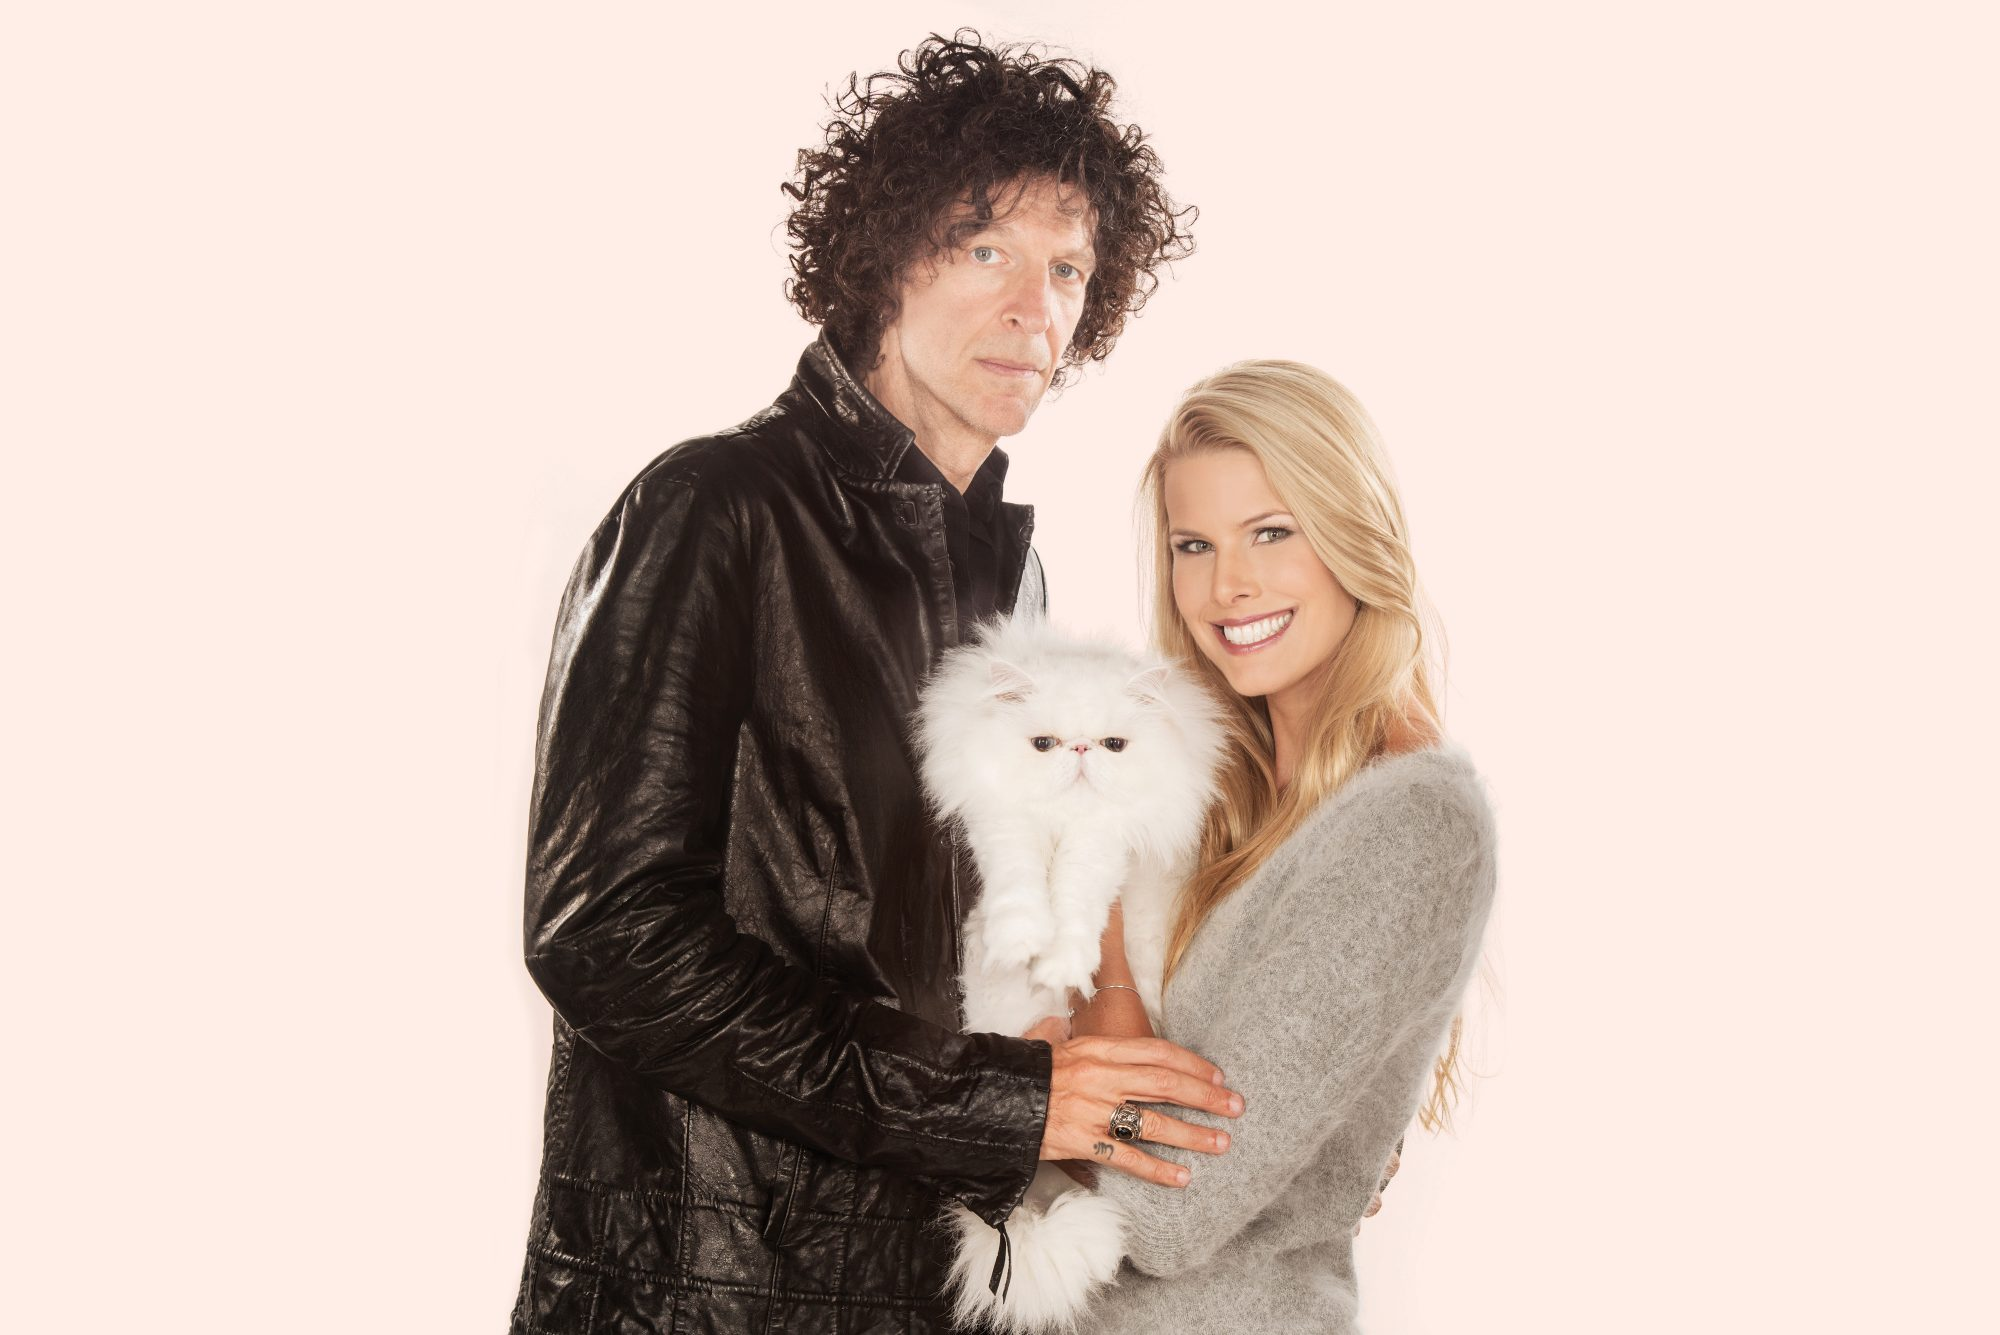 Beth and Howard Stern Love Cats. And They're Using Their $90 Million Fortune to Save Them